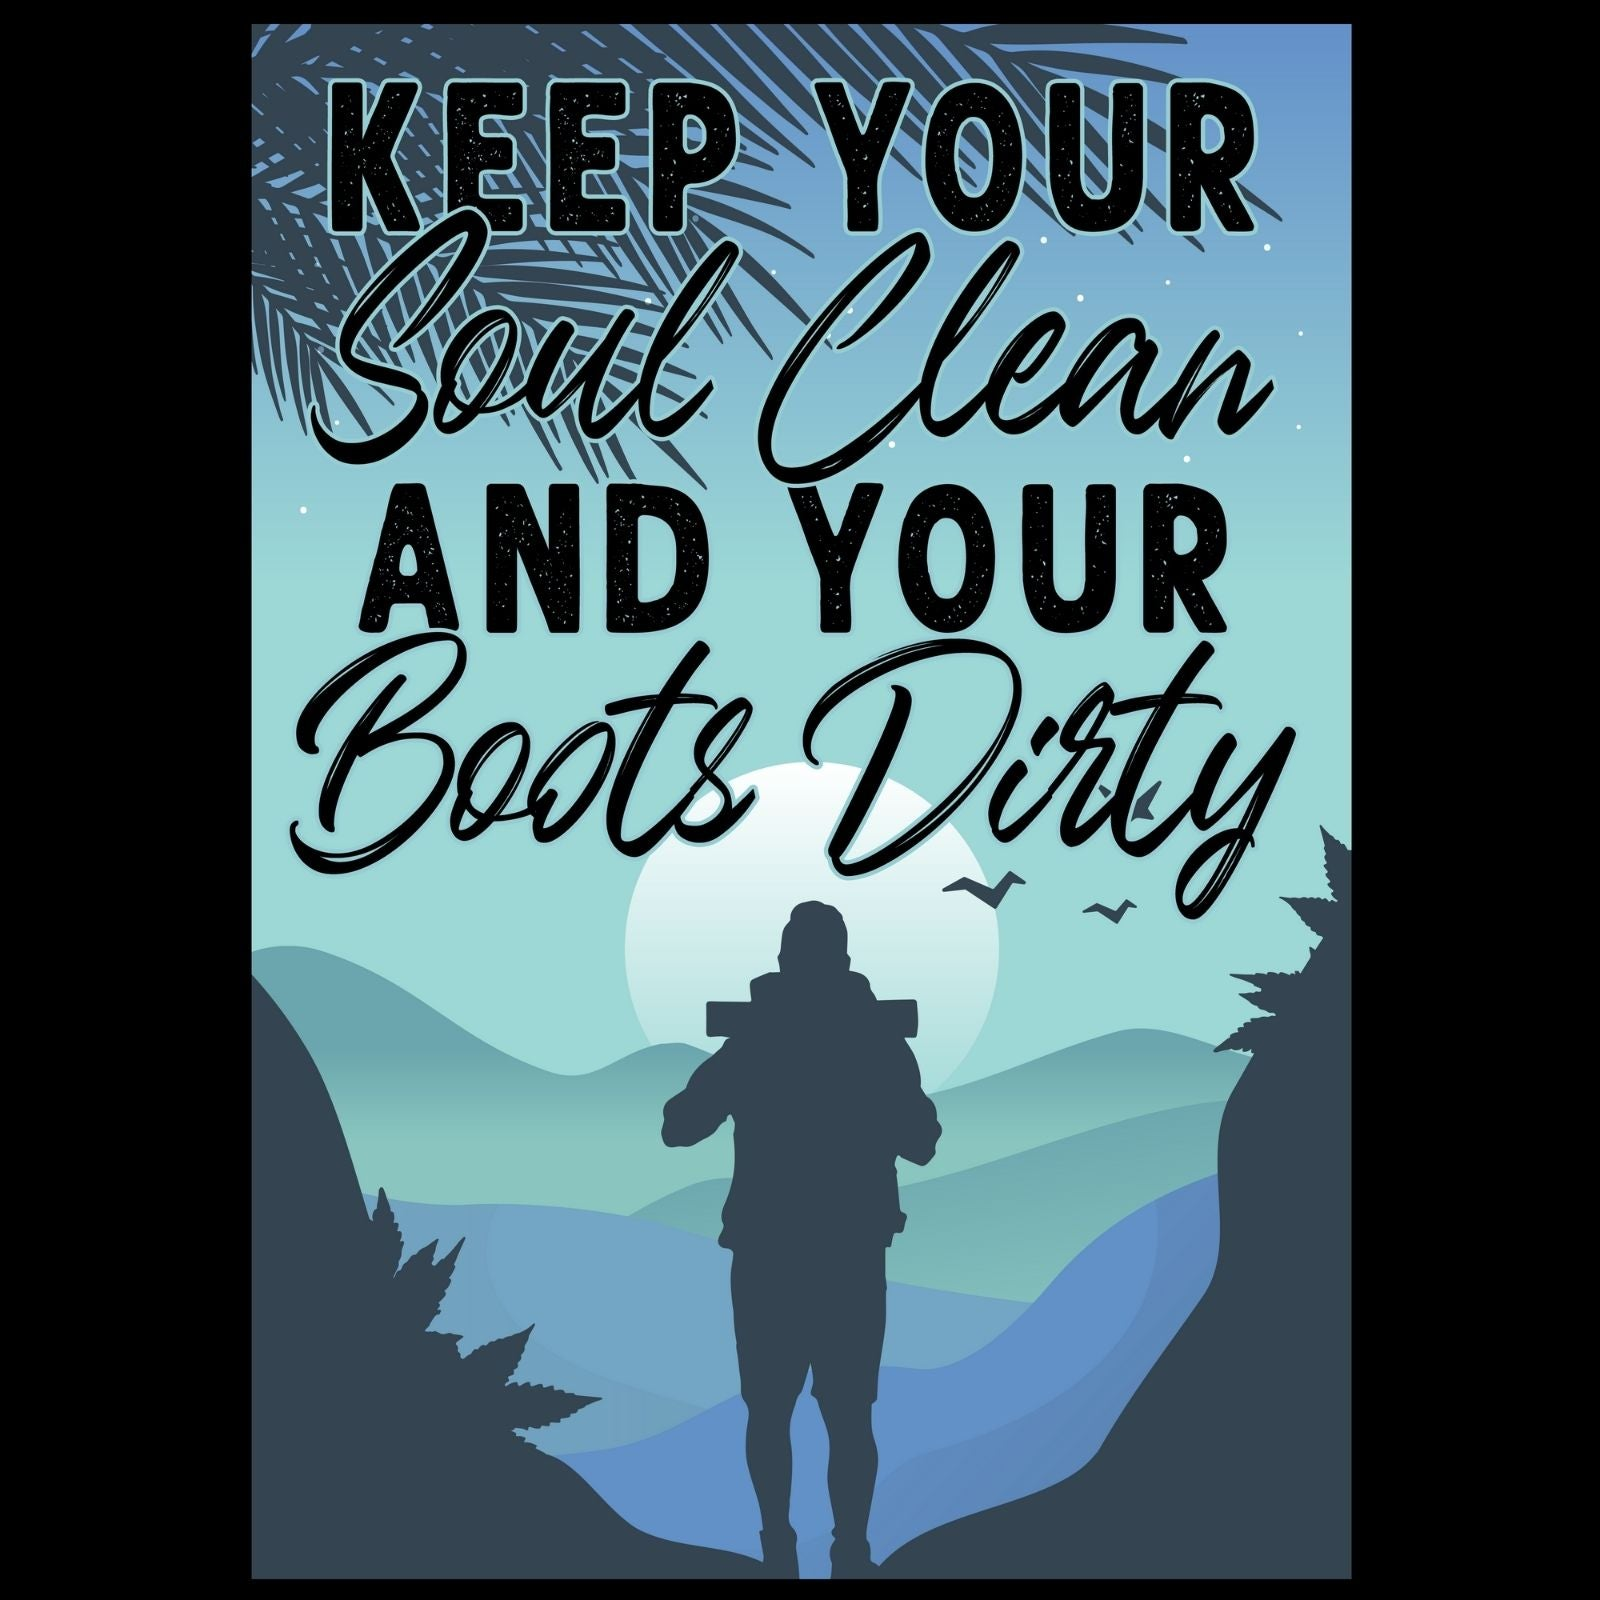 Keep Your Soul Clean And Your Boots Dirty - Bastard Graphics